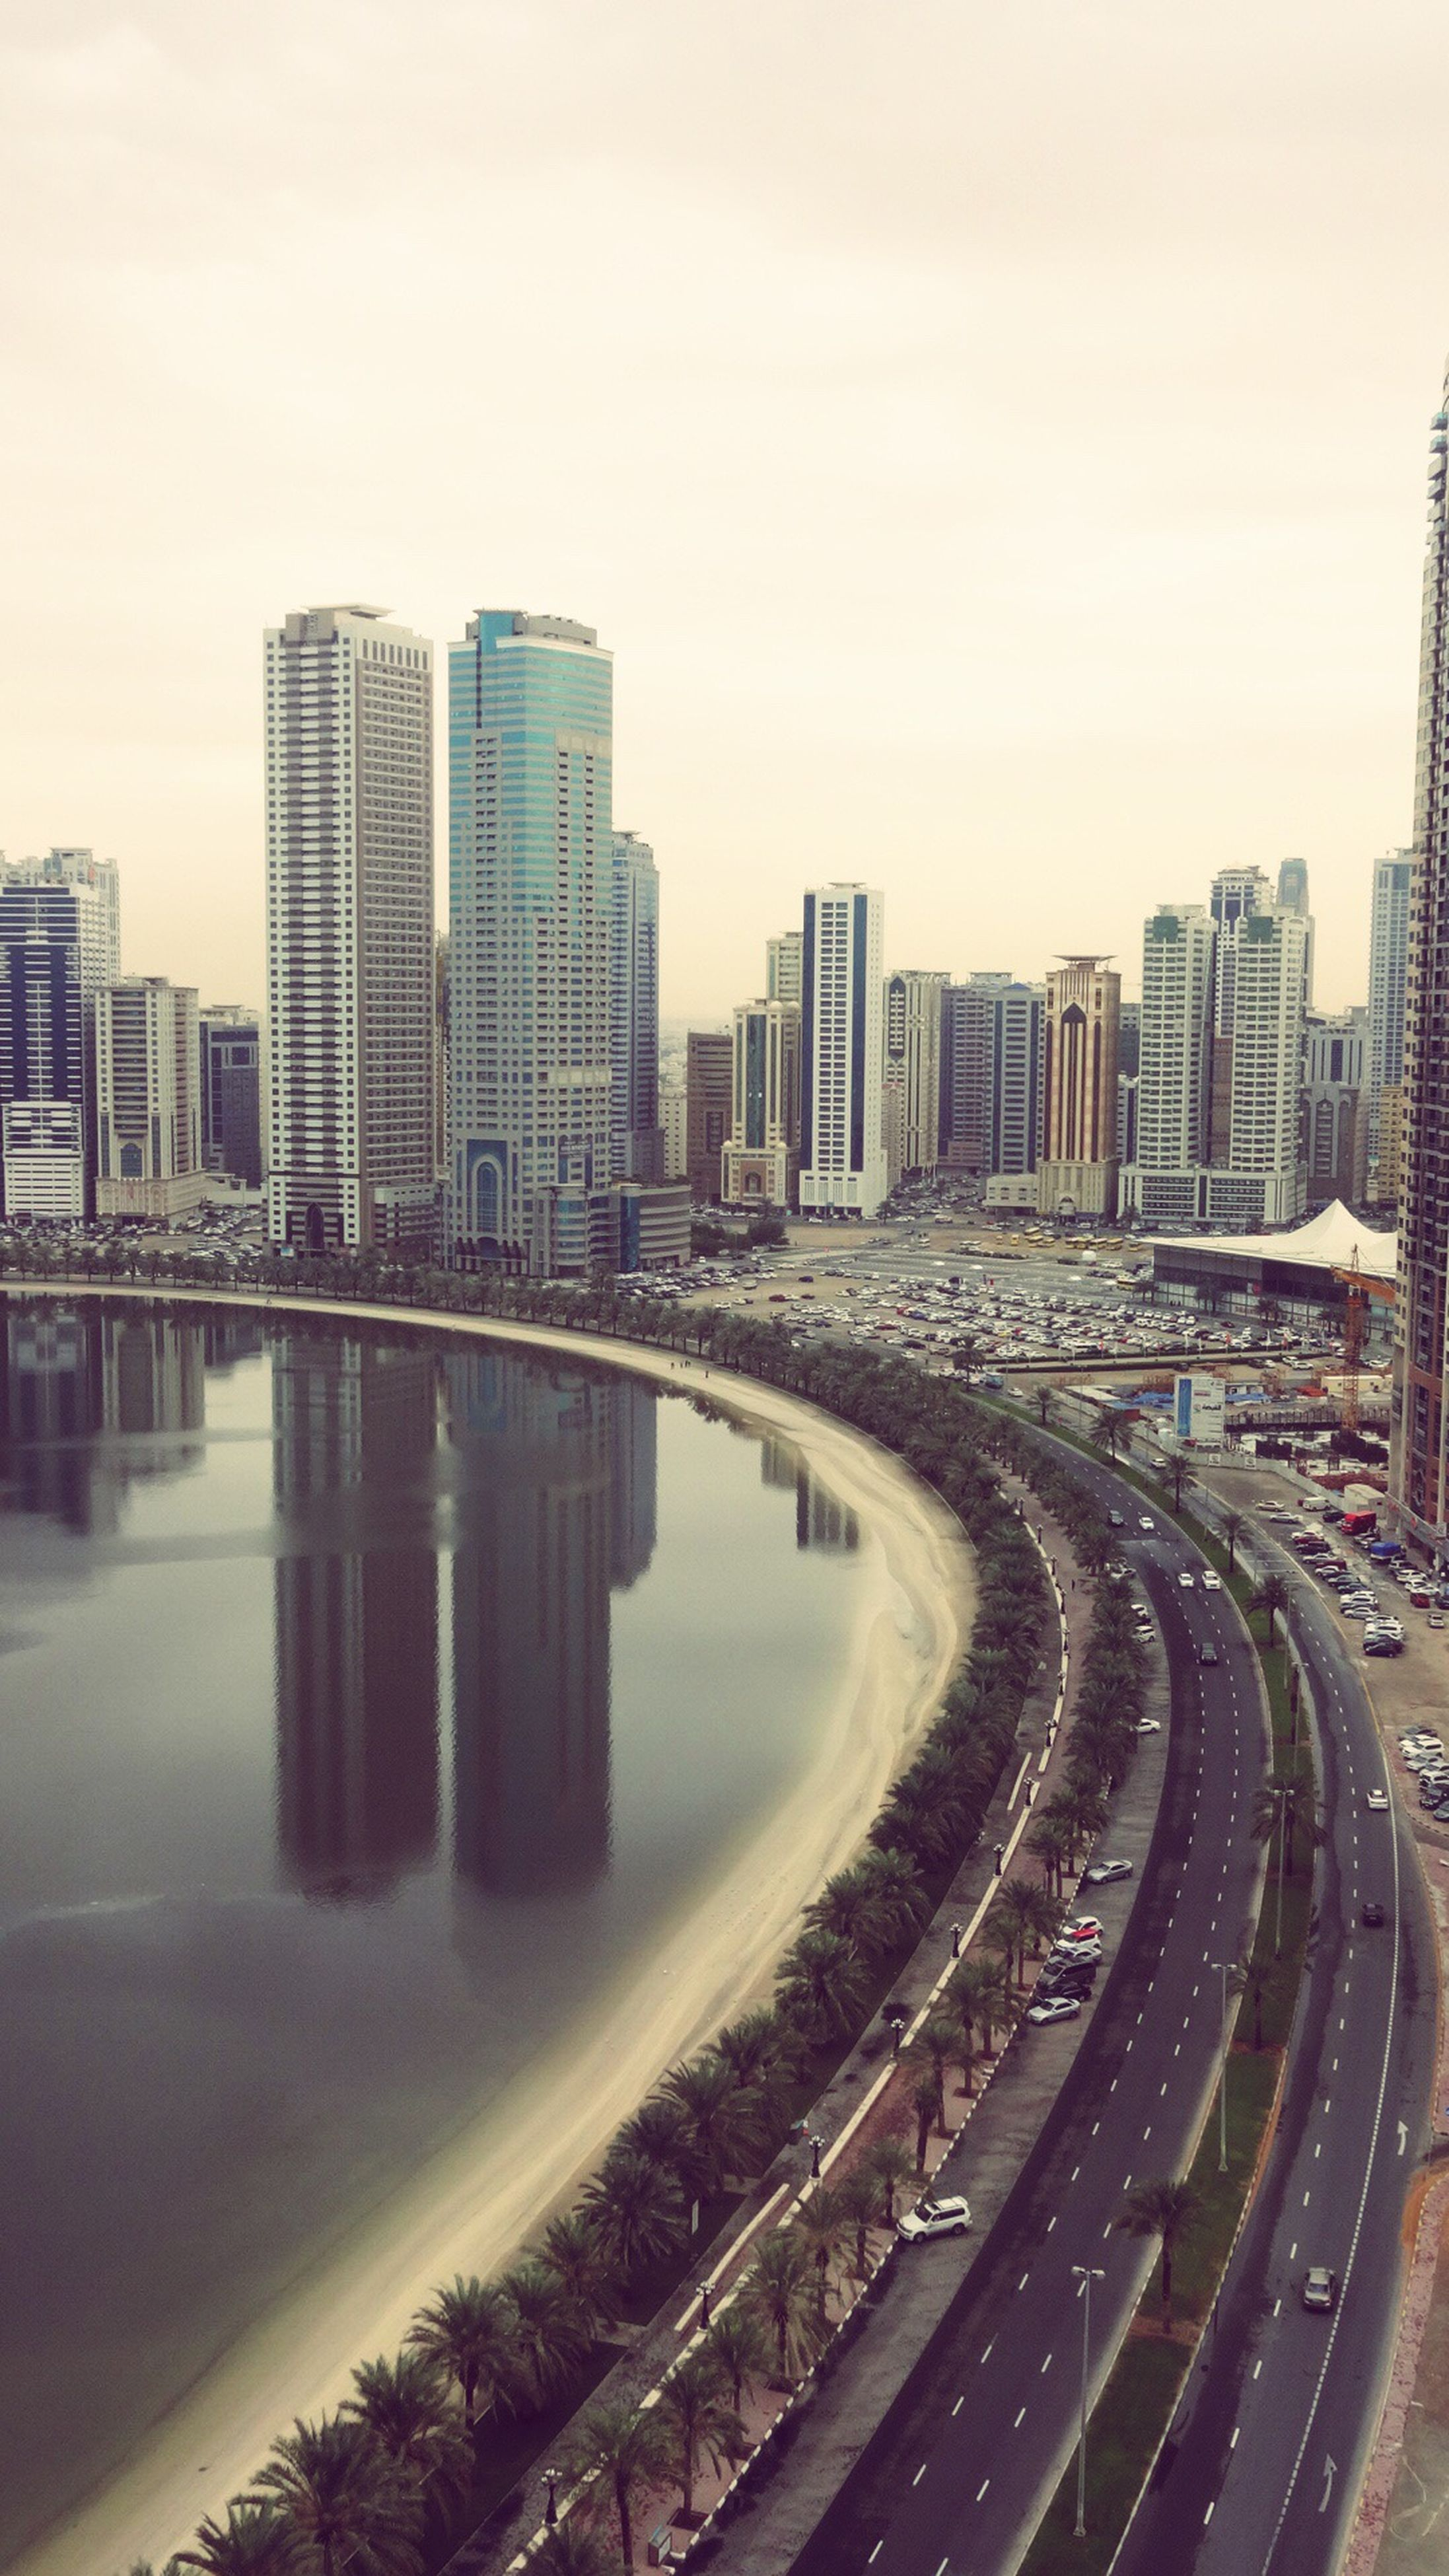 architecture, built structure, building exterior, city, cityscape, water, river, transportation, sky, skyscraper, city life, connection, modern, bridge - man made structure, road, street, high angle view, building, outdoors, clear sky